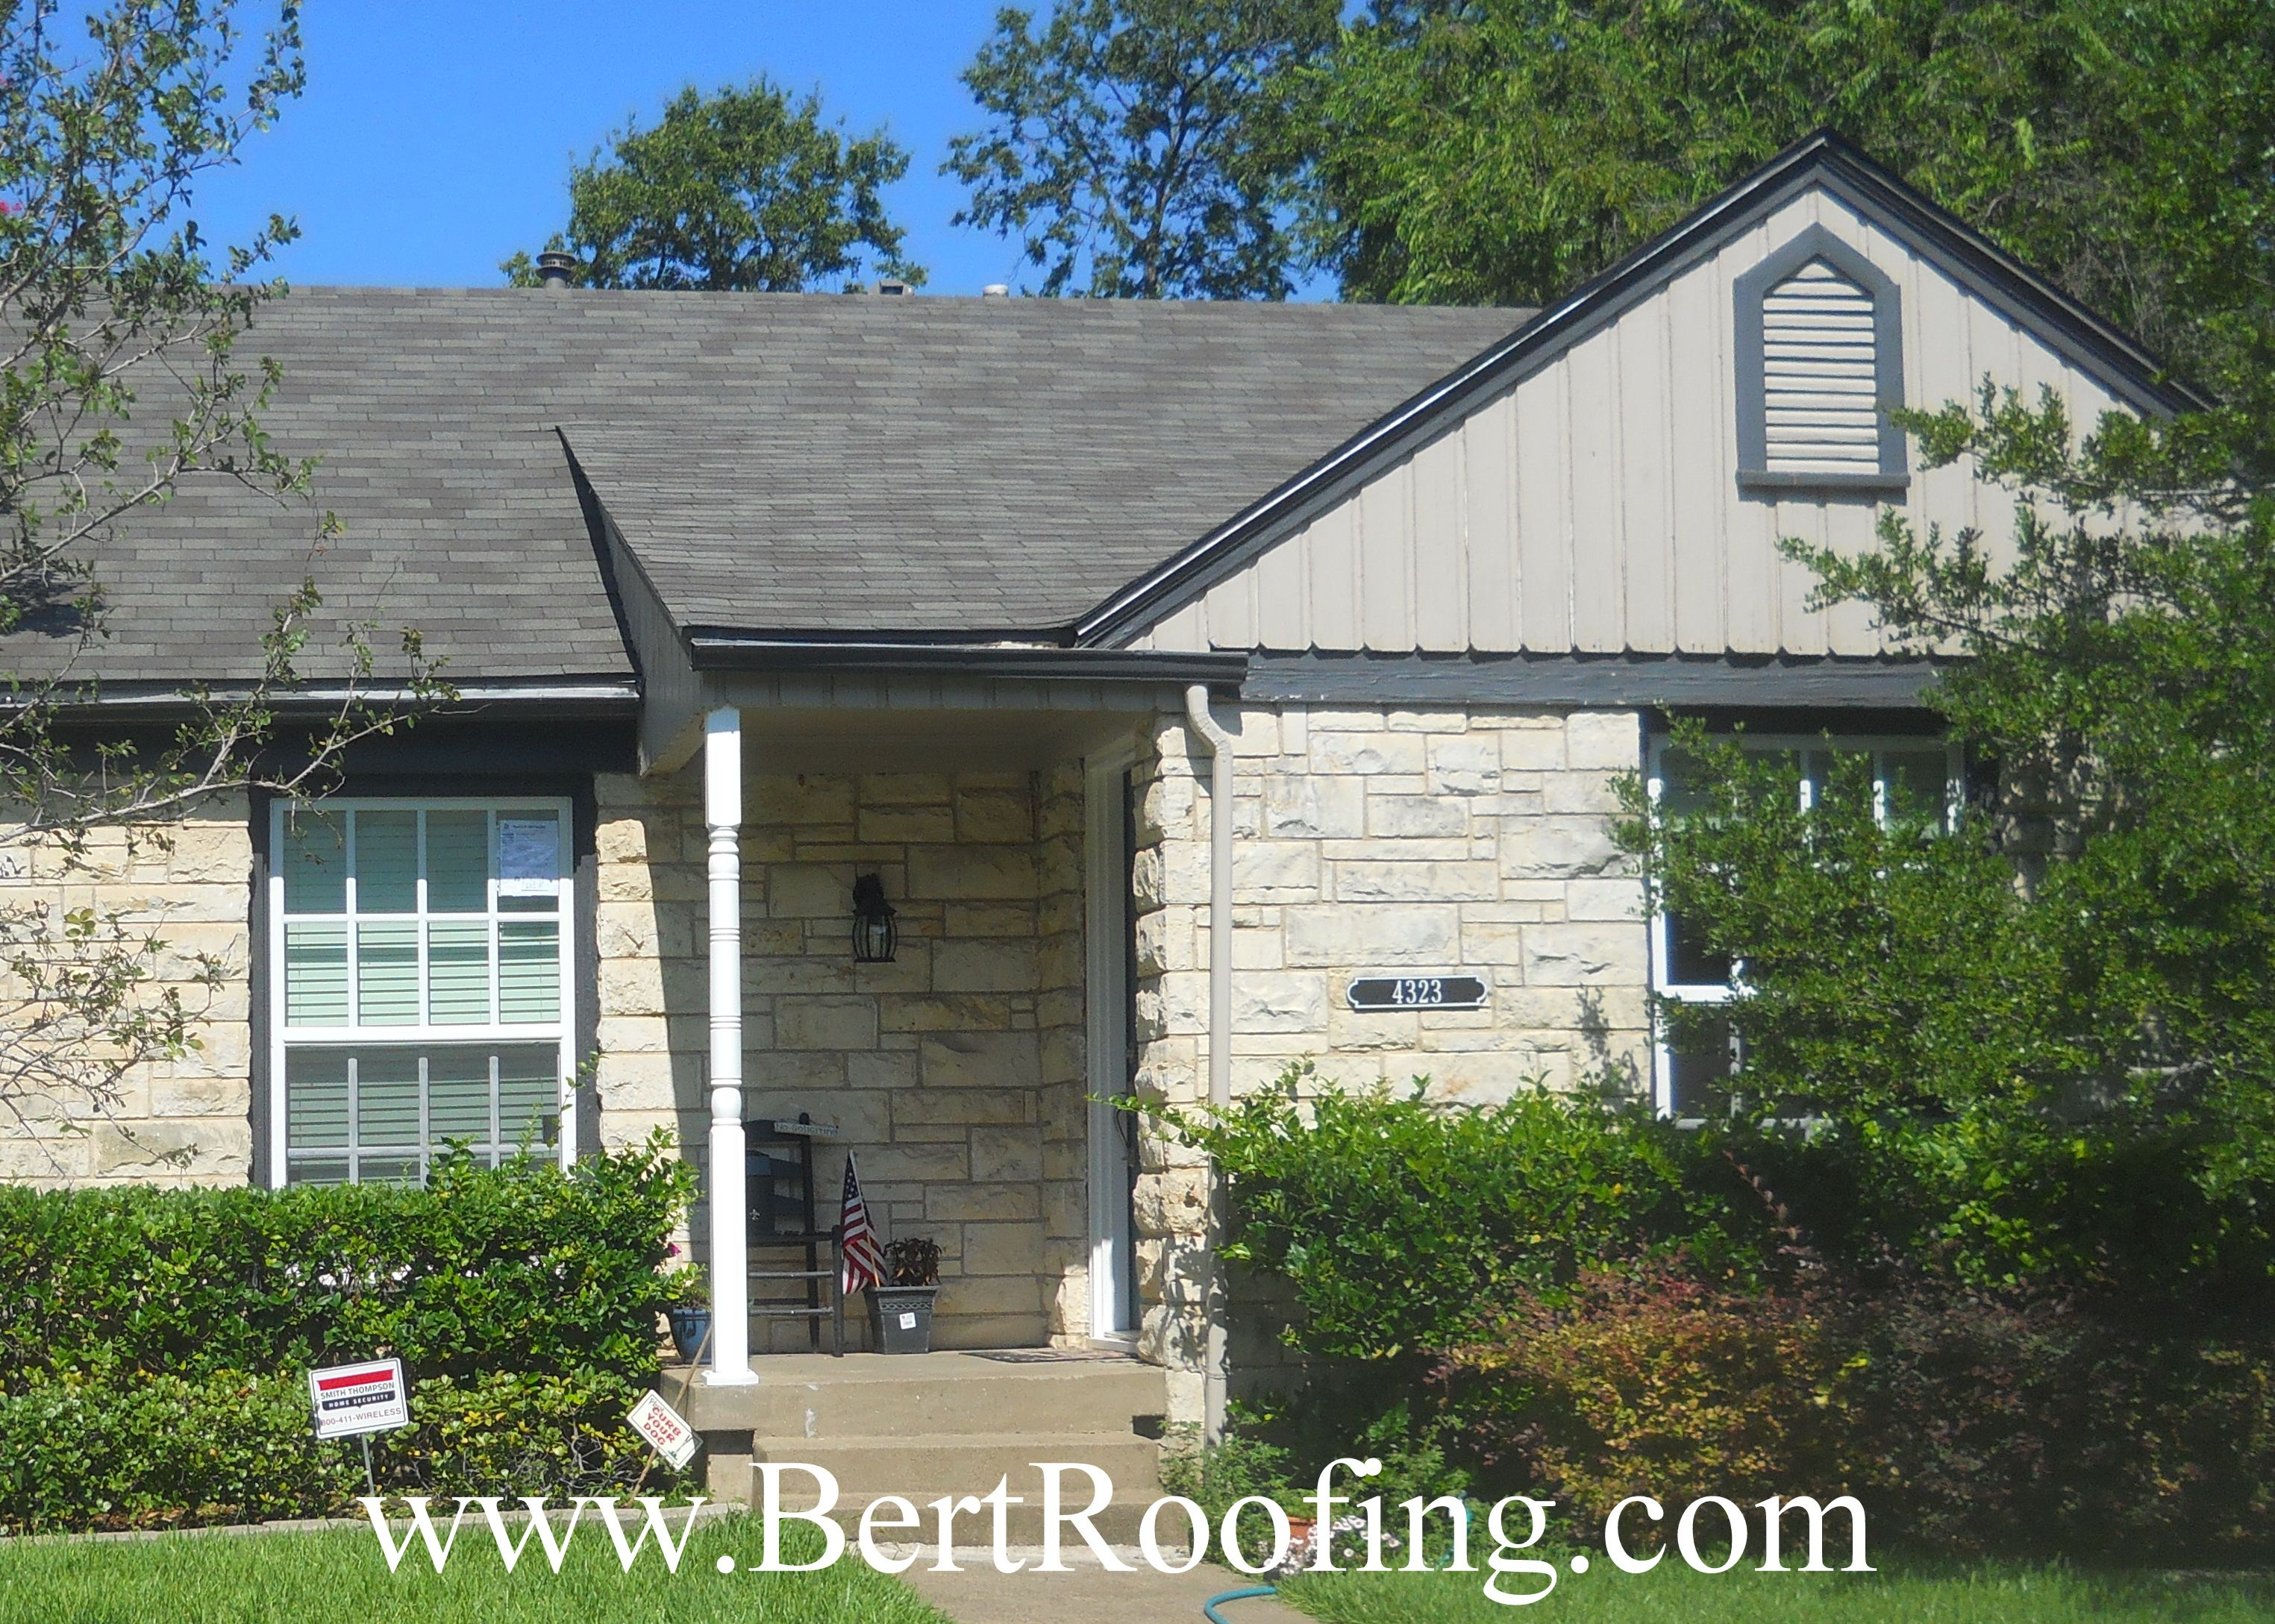 Quality roofing job begins before the shingles go on home remodeling - Certainteed Ct20 20 Year Composition Shingle 3 Tab Color Weathered Wood Installed By Bert Roofing Inc Of Dallas In Dallas On July 2014